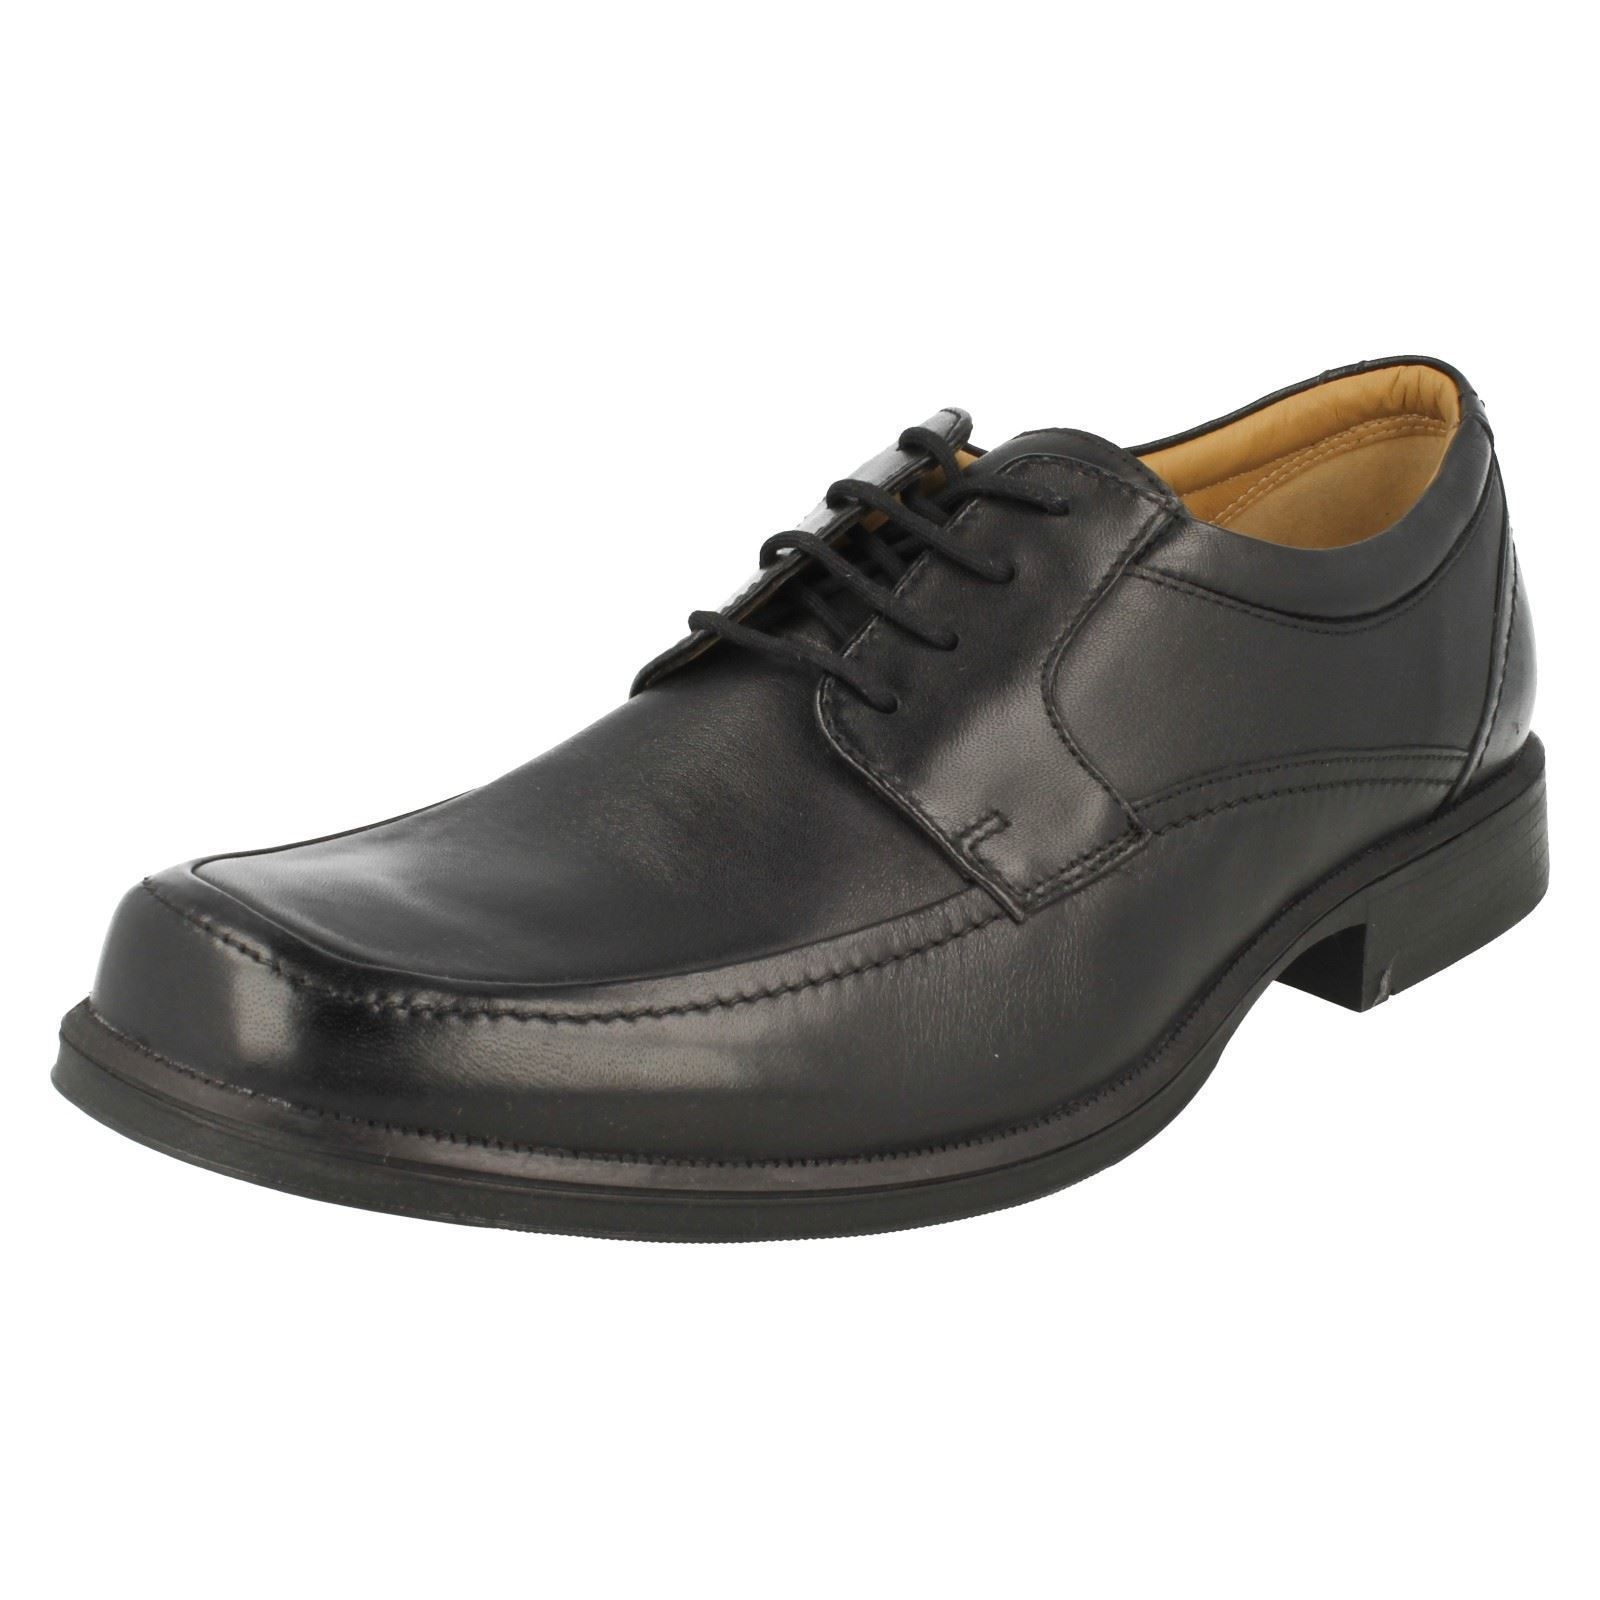 Uomo Clarks Leather 'Hang Spring' Smart Leather Clarks Shoes ~ K 59dbc0